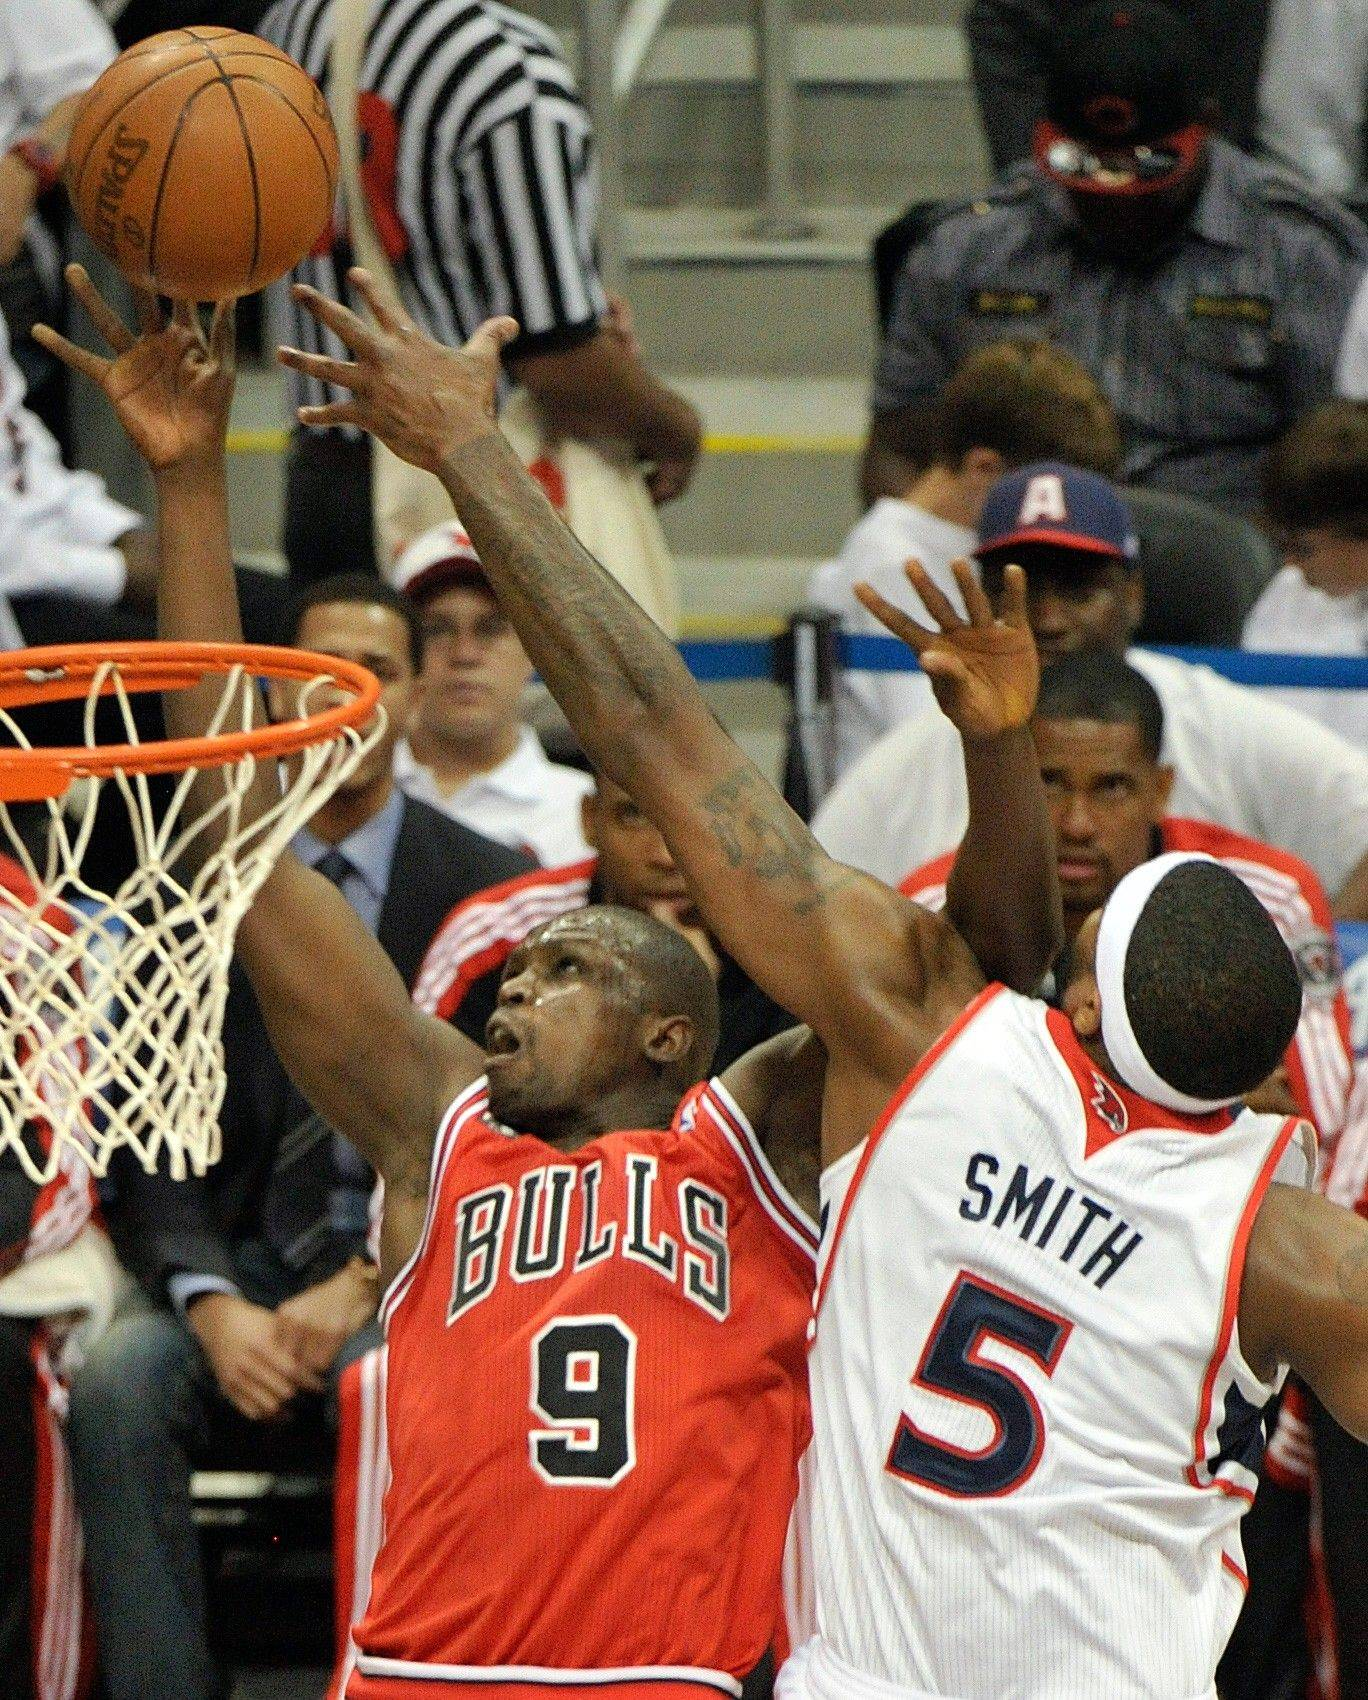 Chicago Bulls small forward Luol Deng shoots under pressure from Atlanta Hawks power forward Josh Smith in the first quarter Thursday.